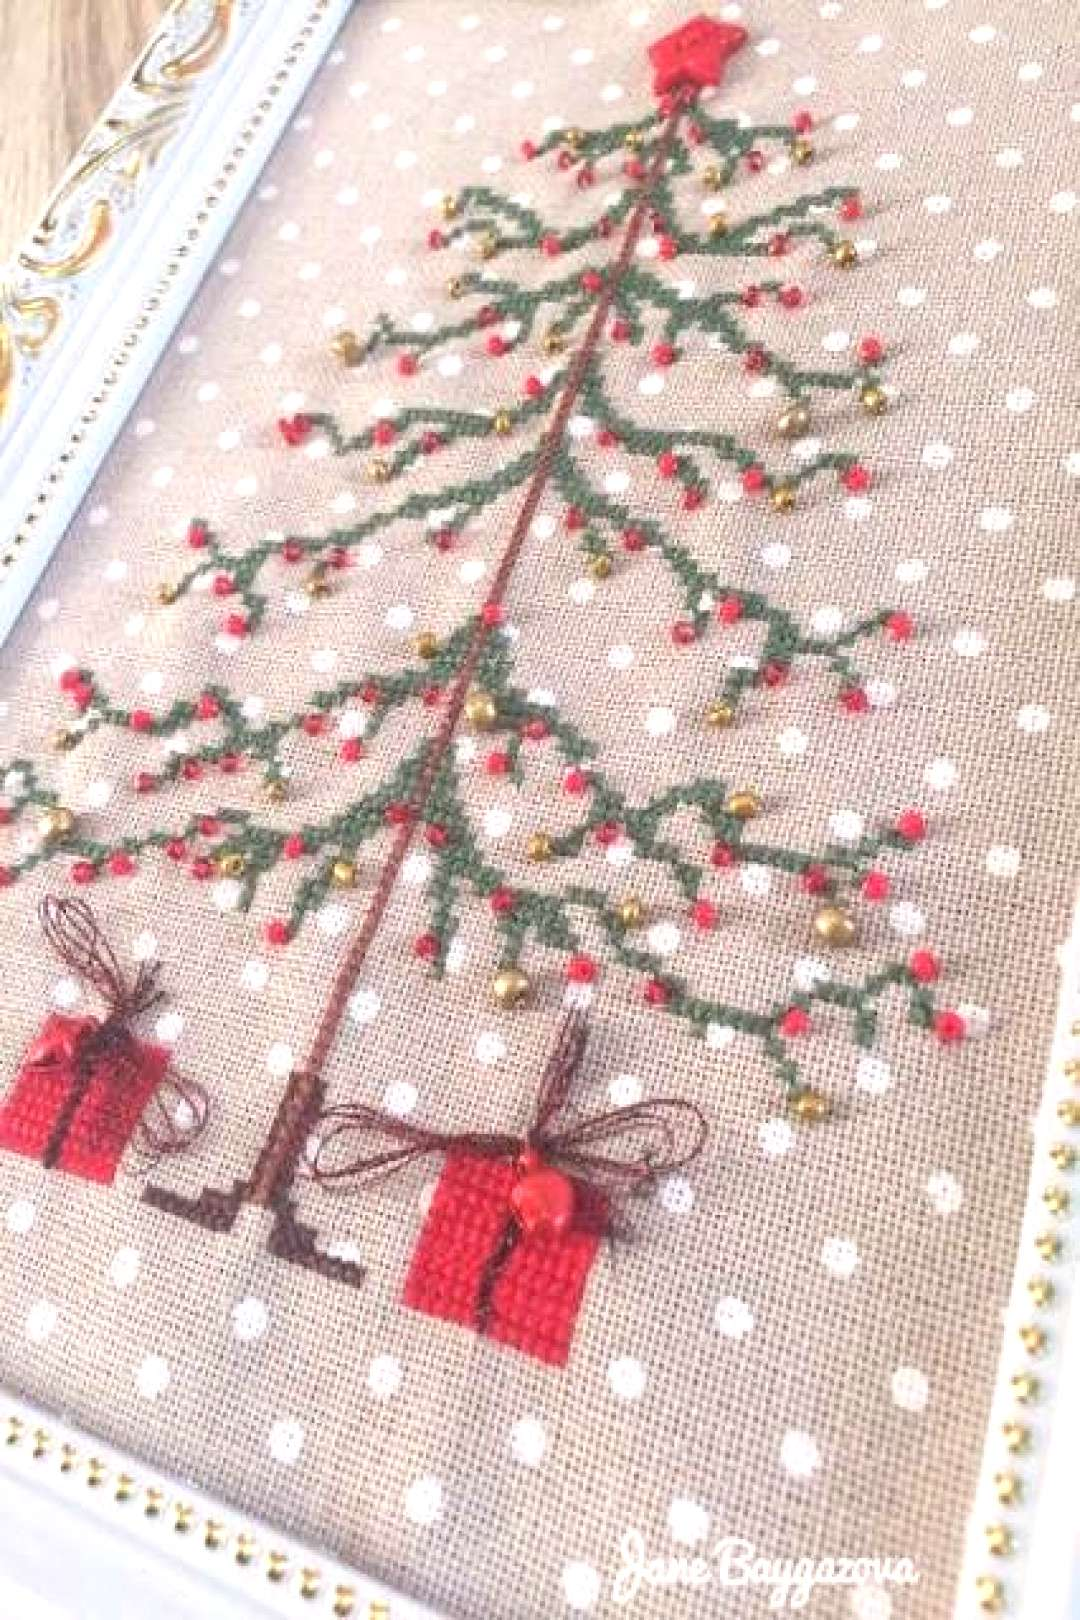 Best Embroidery Christmas Tree Pattern Free Crochet 18 Ideas Best Embroidery Christmas Tree Pattern